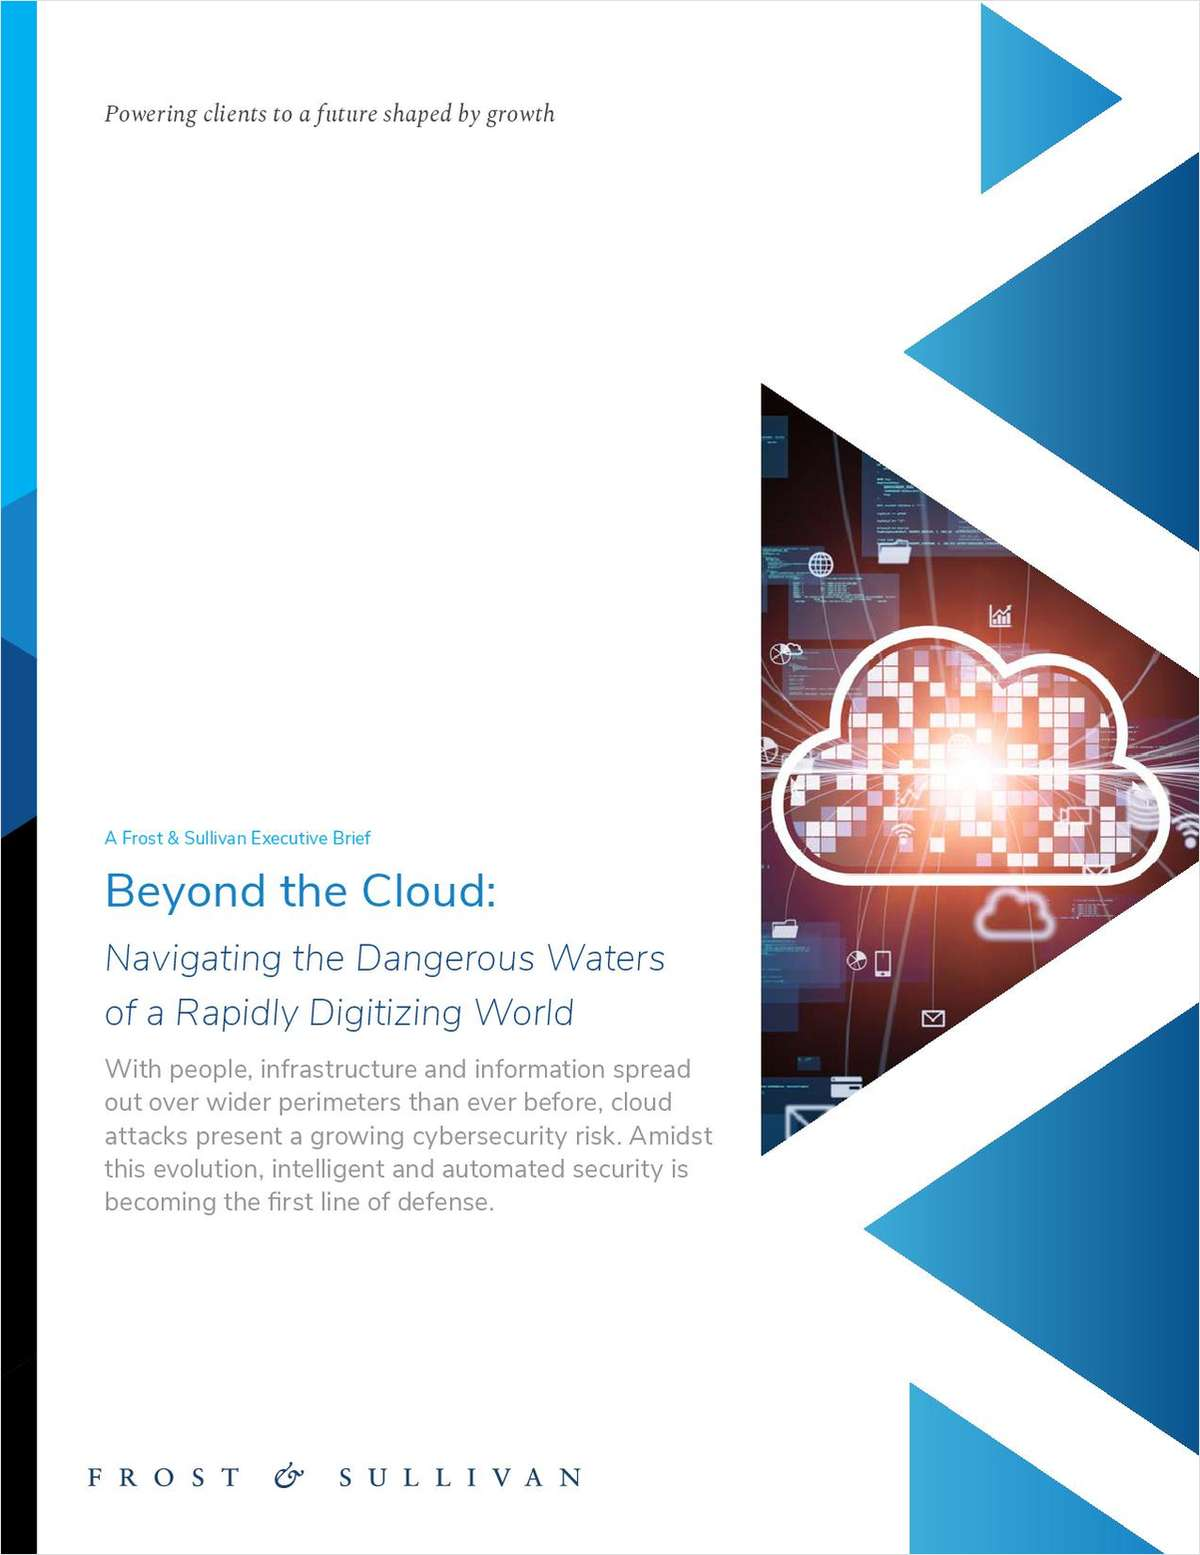 Beyond the Cloud: Navigating the Dangerous Waters  of a Rapidly Digitizing World